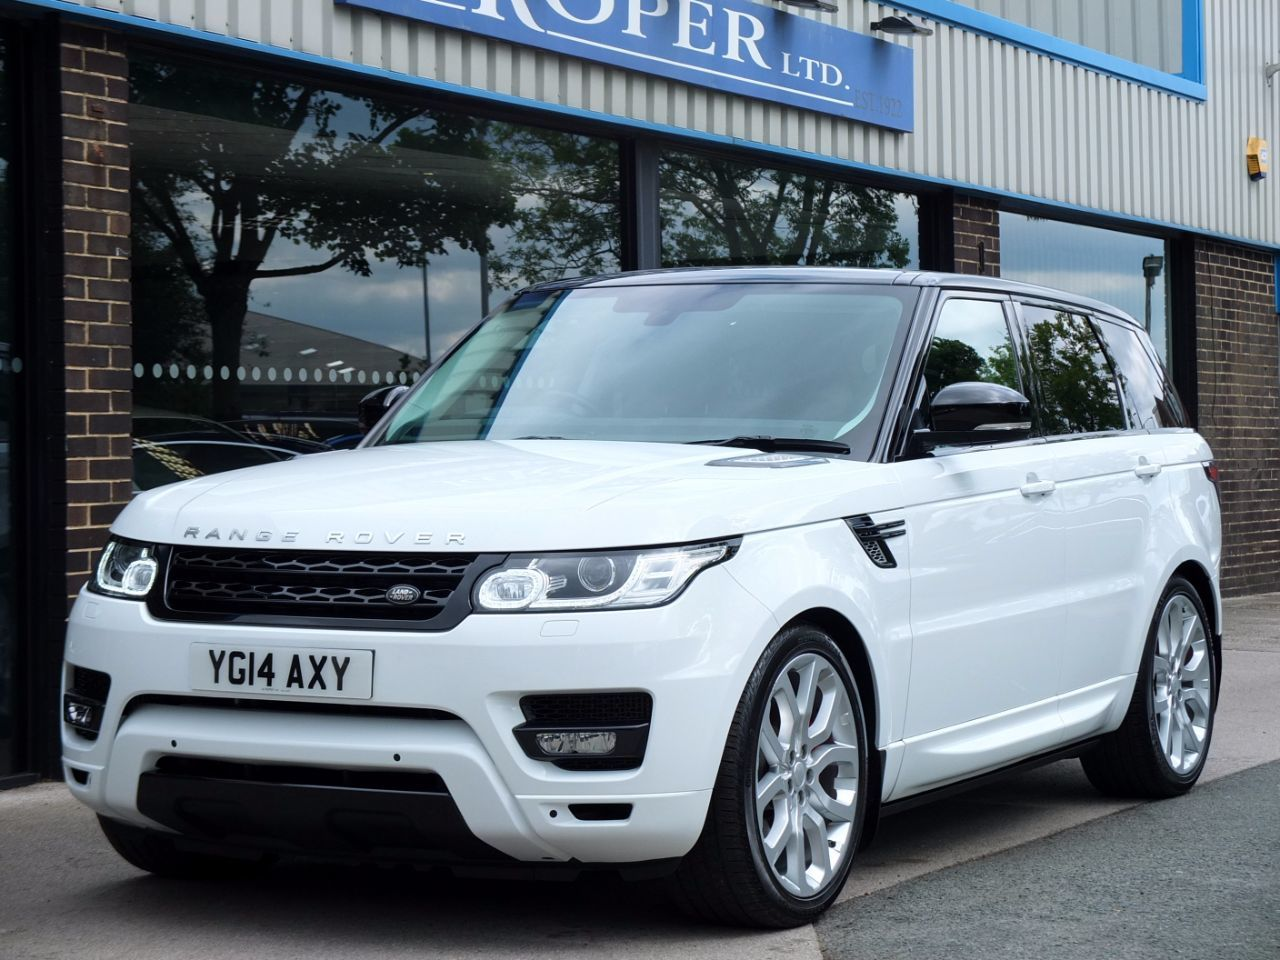 used land rover range rover sport 3 0 sdv6 hse dynamic auto for sale in bradford west yorkshire. Black Bedroom Furniture Sets. Home Design Ideas